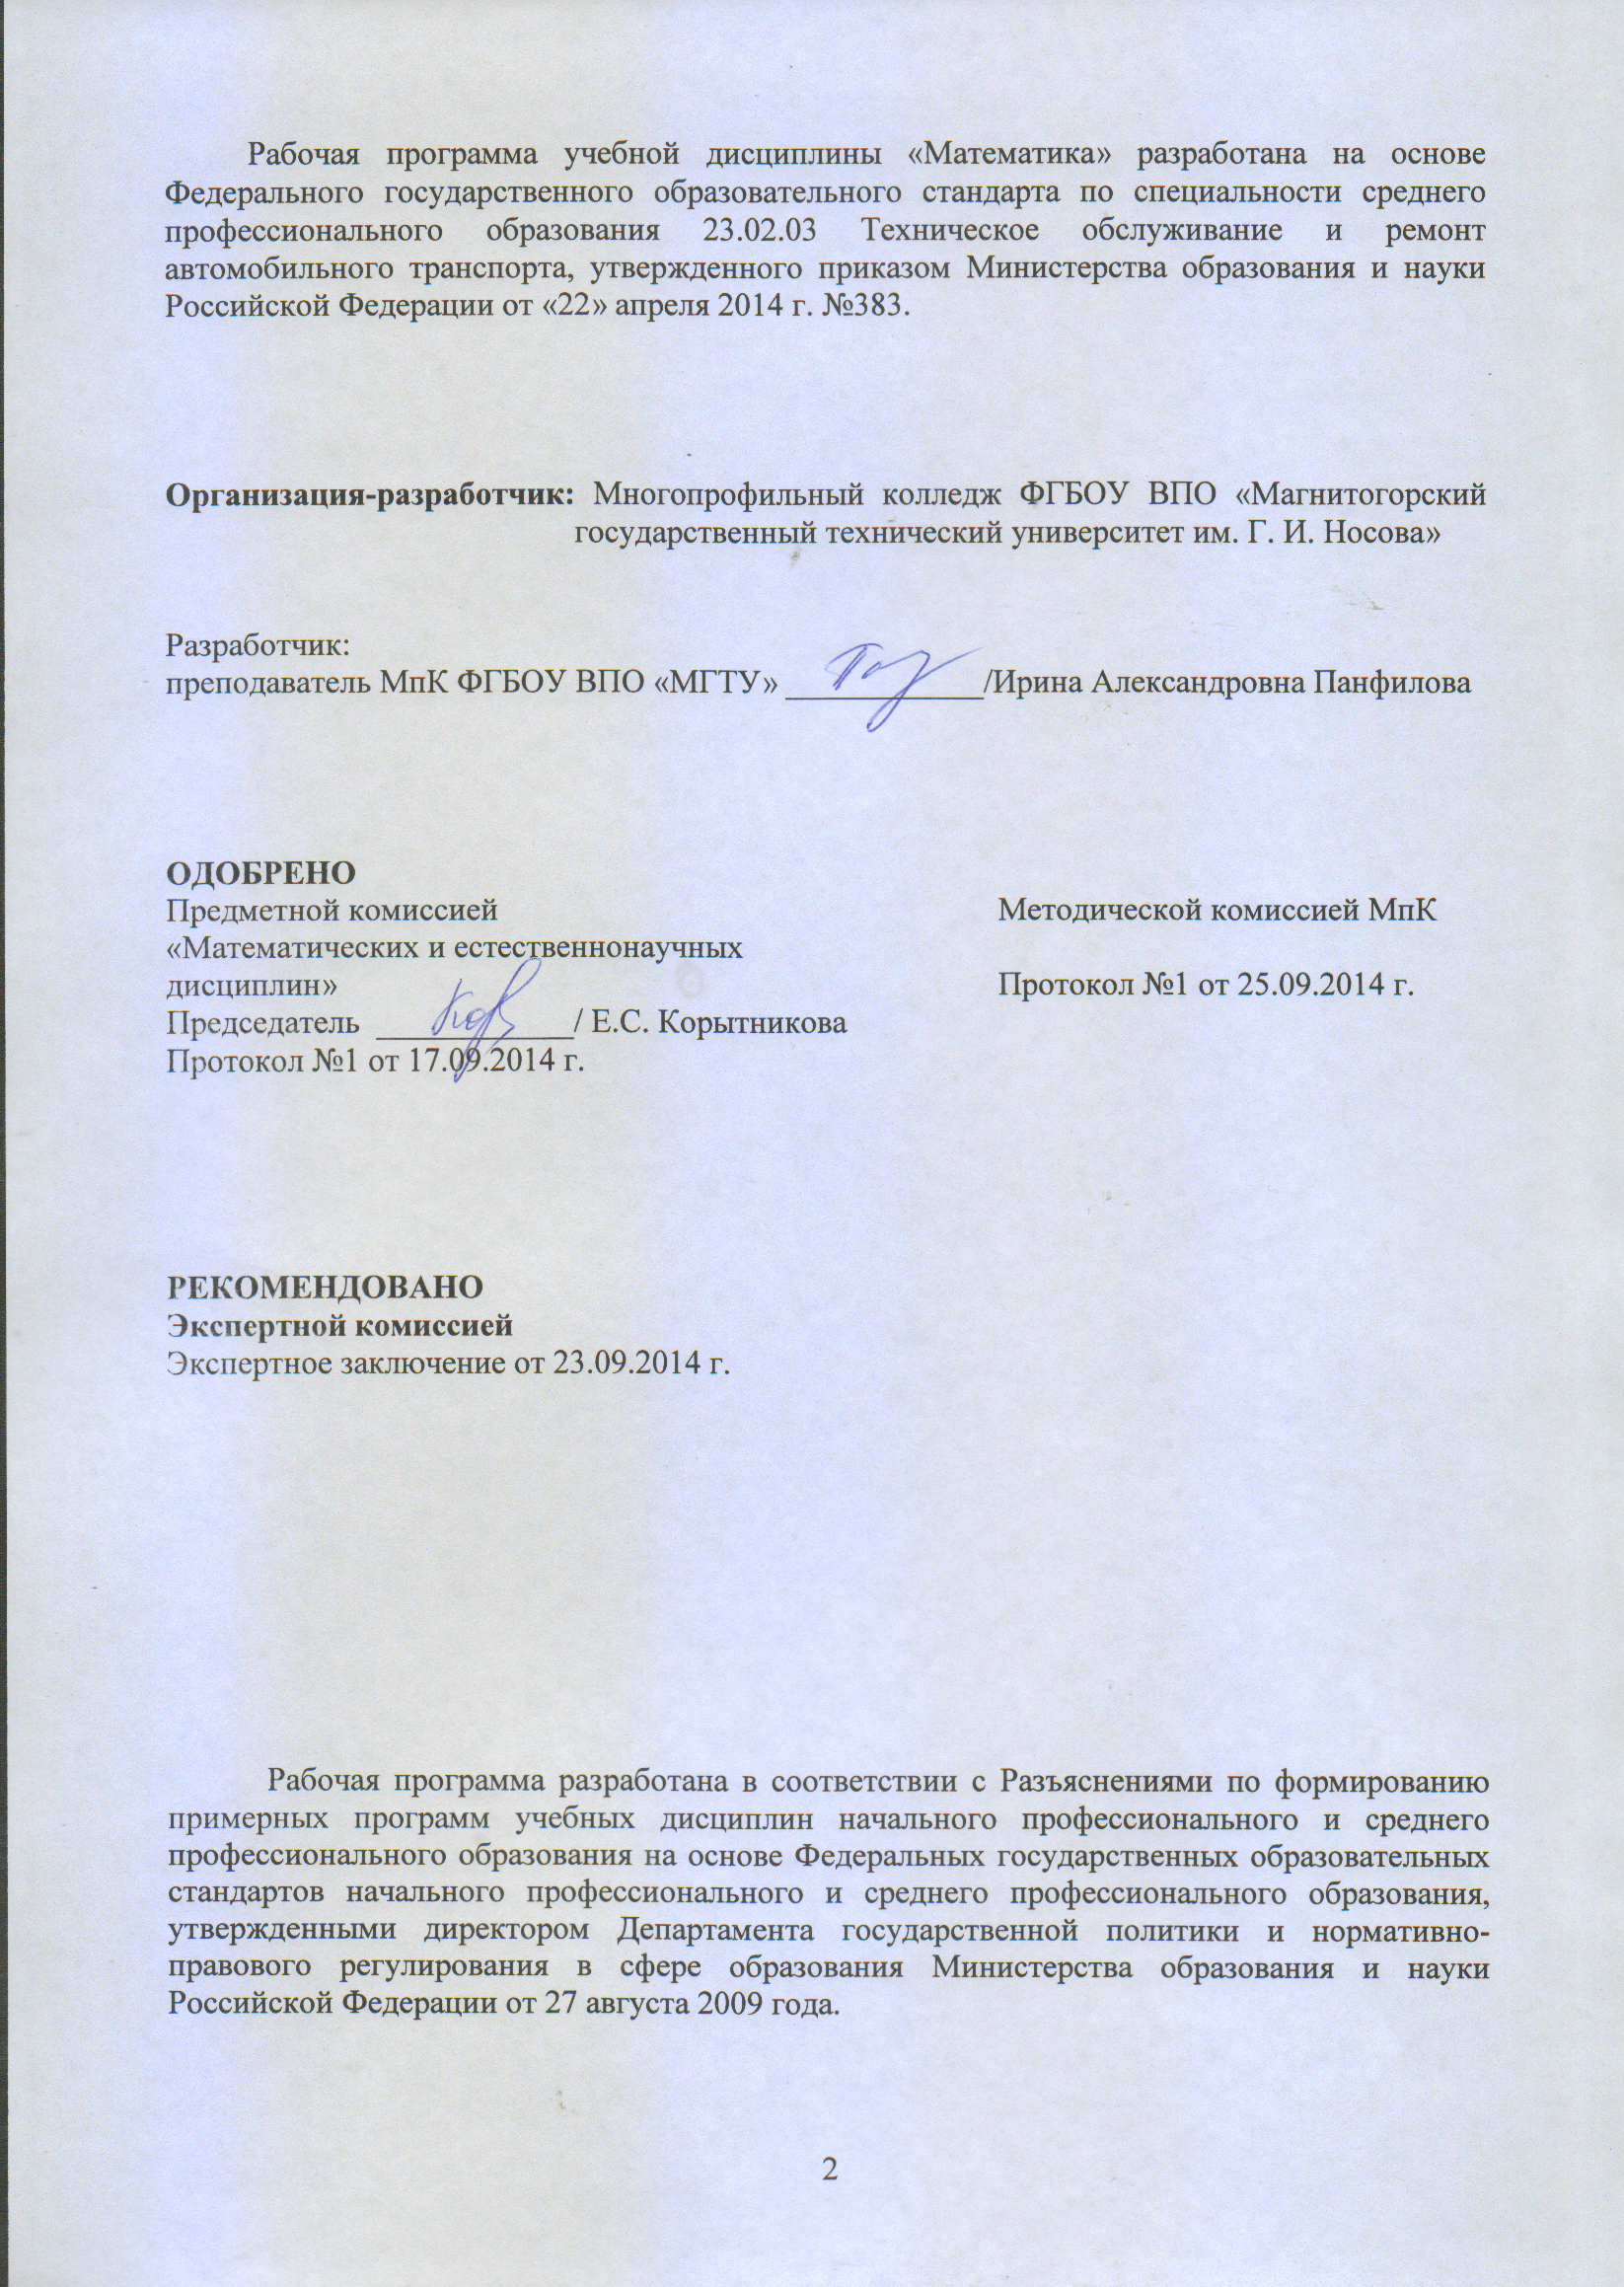 D:\Documents and Settings\m.shemetova\Рабочий стол\сканы\230203\22.bmp